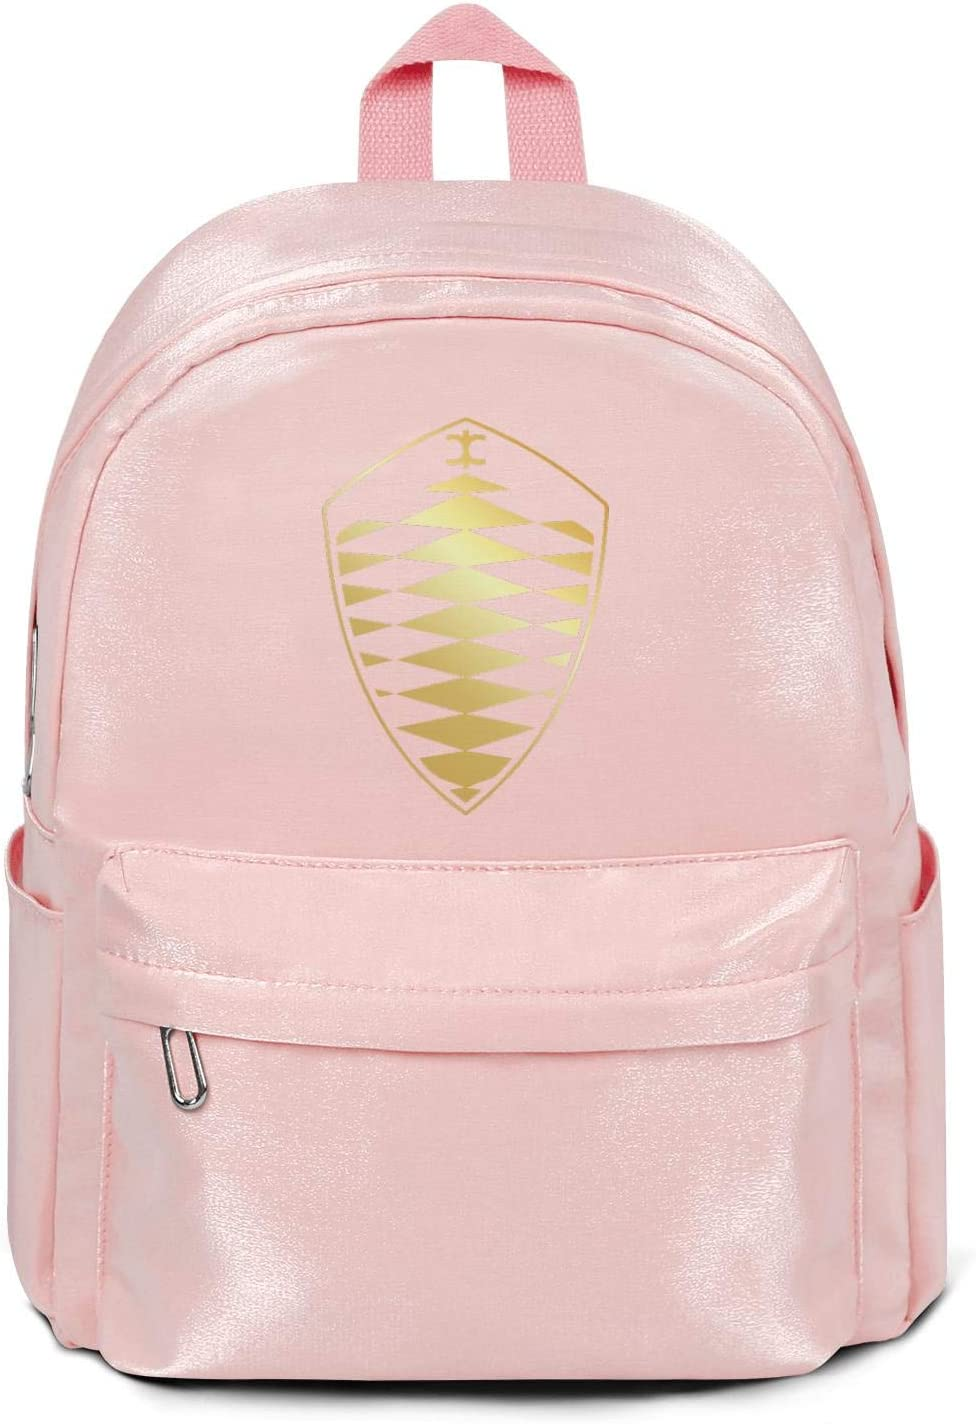 Womens Girl Boys Bag Casual Nylon Lightweight 13 Inch Laptop Compartment Backpack Bag Purse Pink Koenigsegg-Flash-gold-agera-model-car